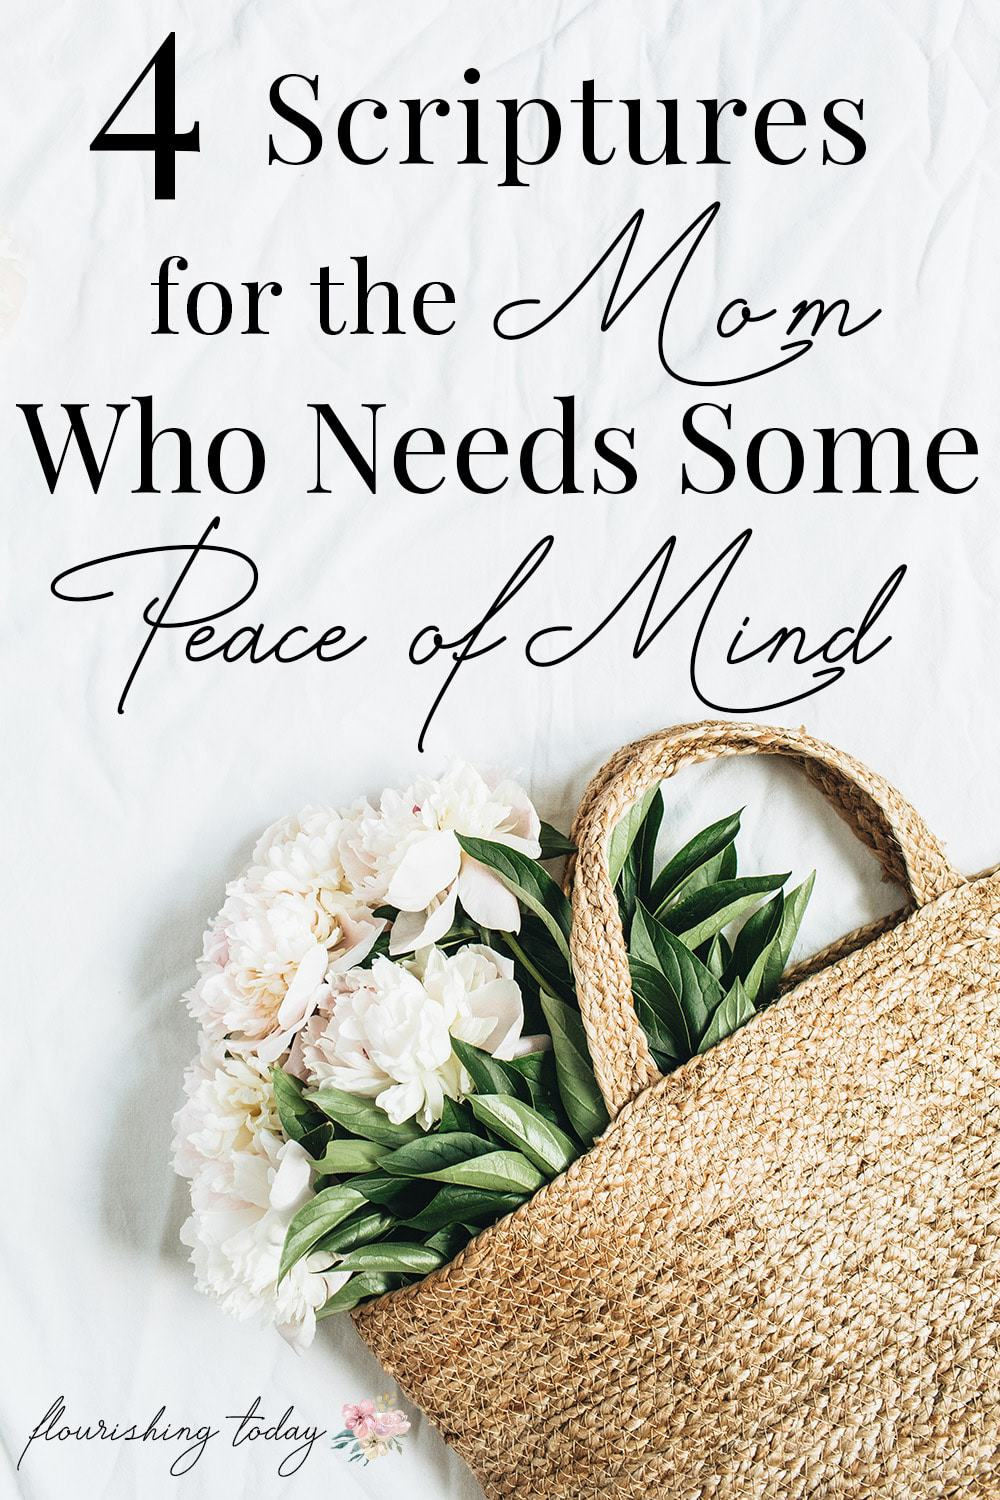 Are you overwhelmed as a mom? Do you need scriptures for peace of mind? Here are 4 scriptures to give you peace of mind as a mom! #freeprintable #motherhood #peacescriptures #peace